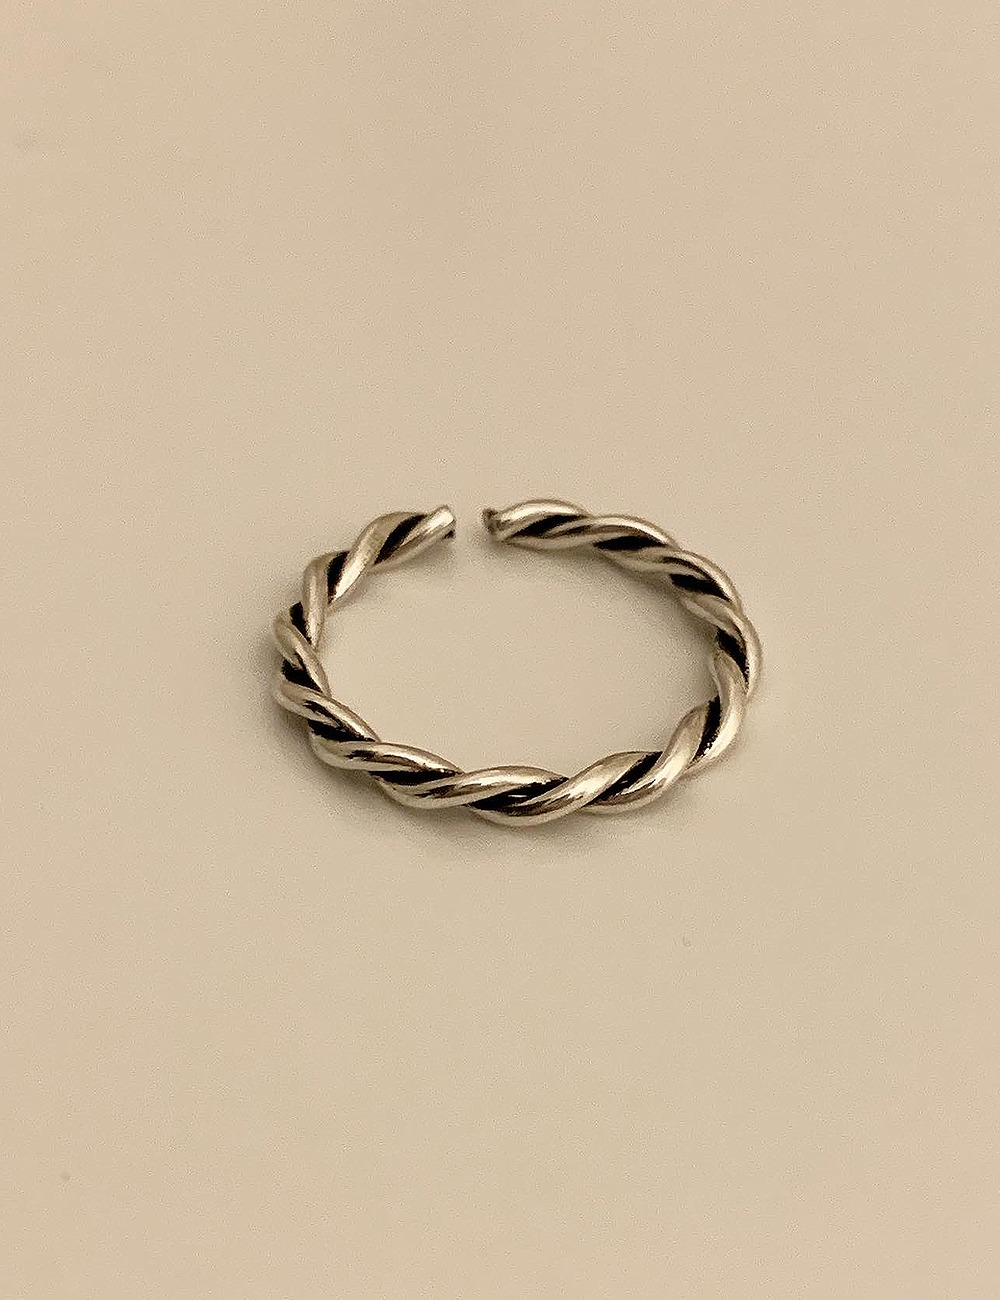 (silver 92.5) Antique twist open ring